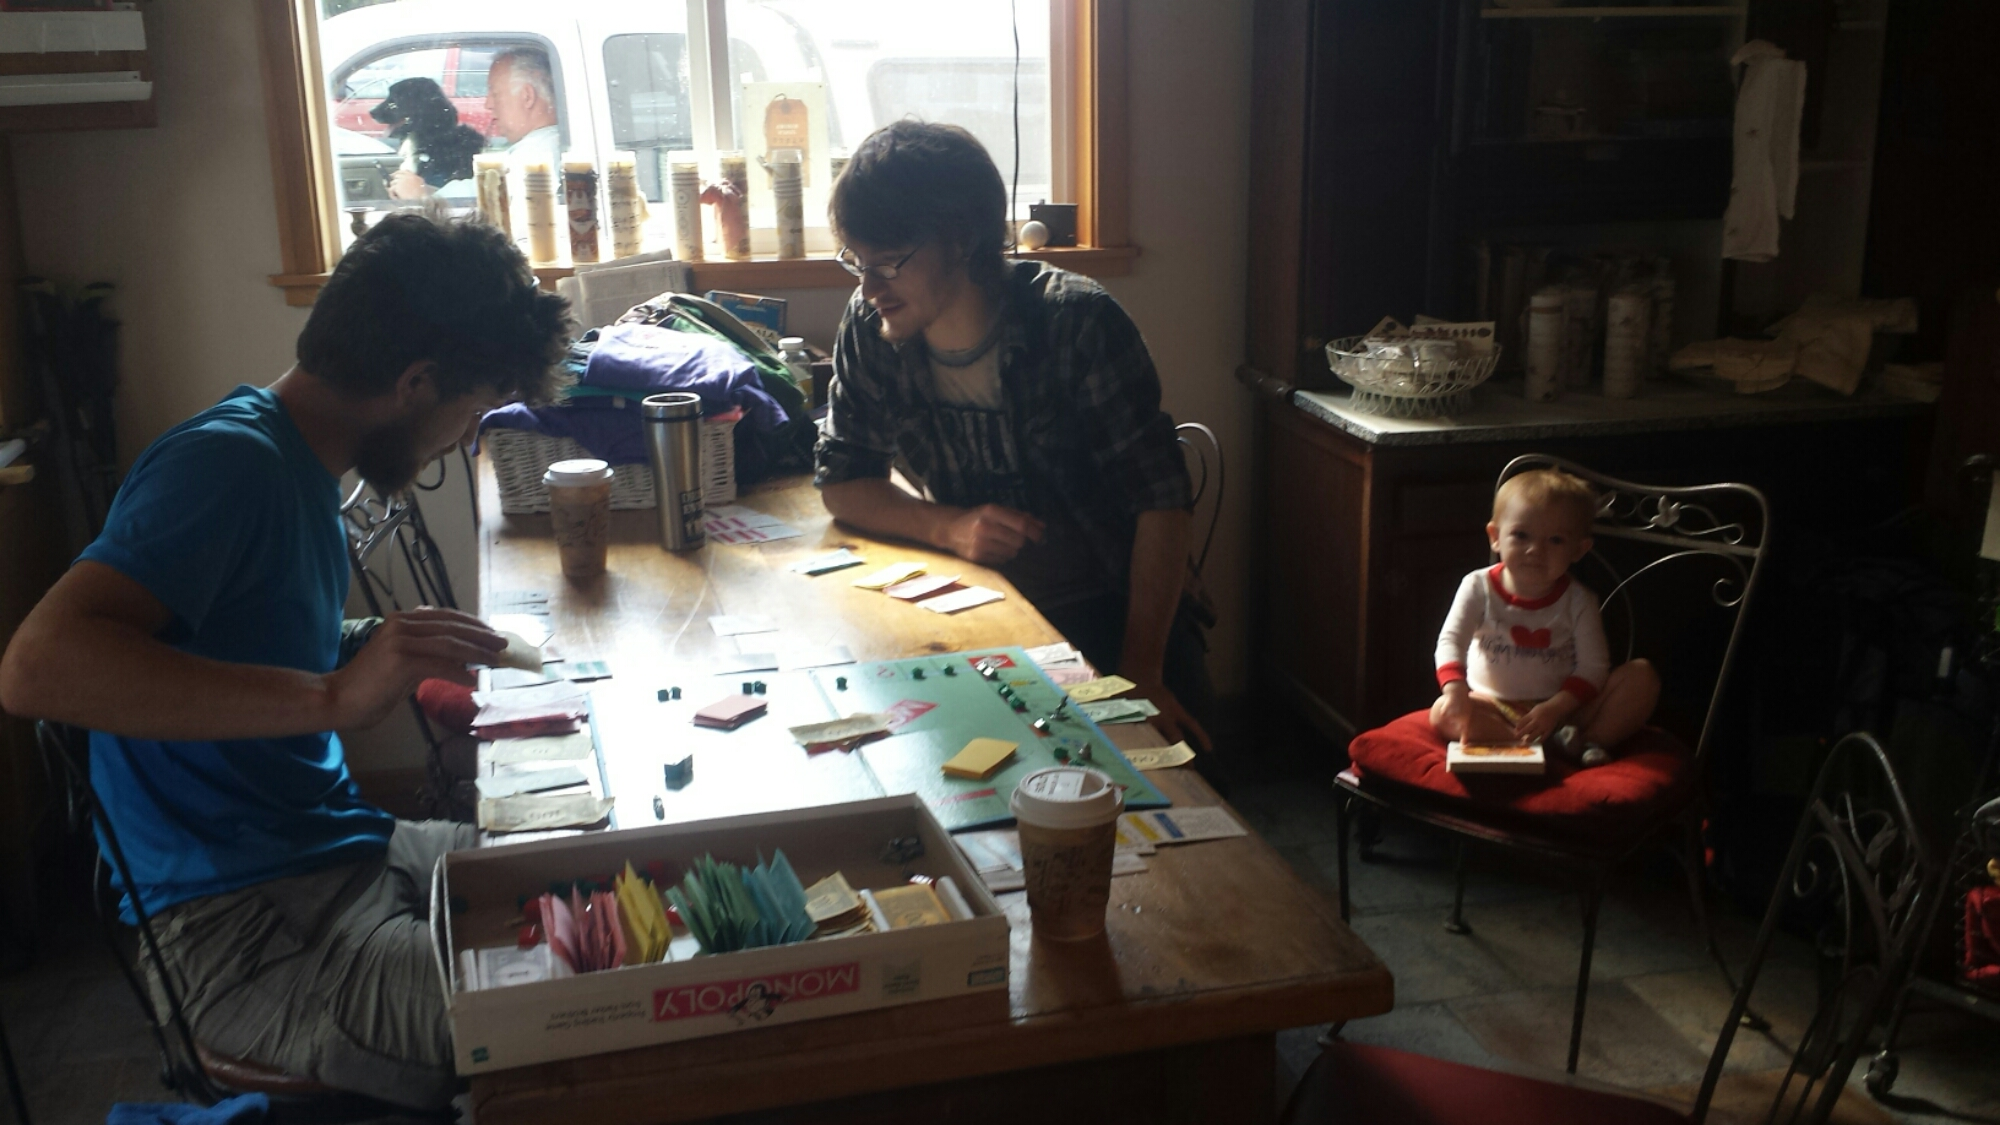 Monopoly with Khalil, Skyler and baby Nova